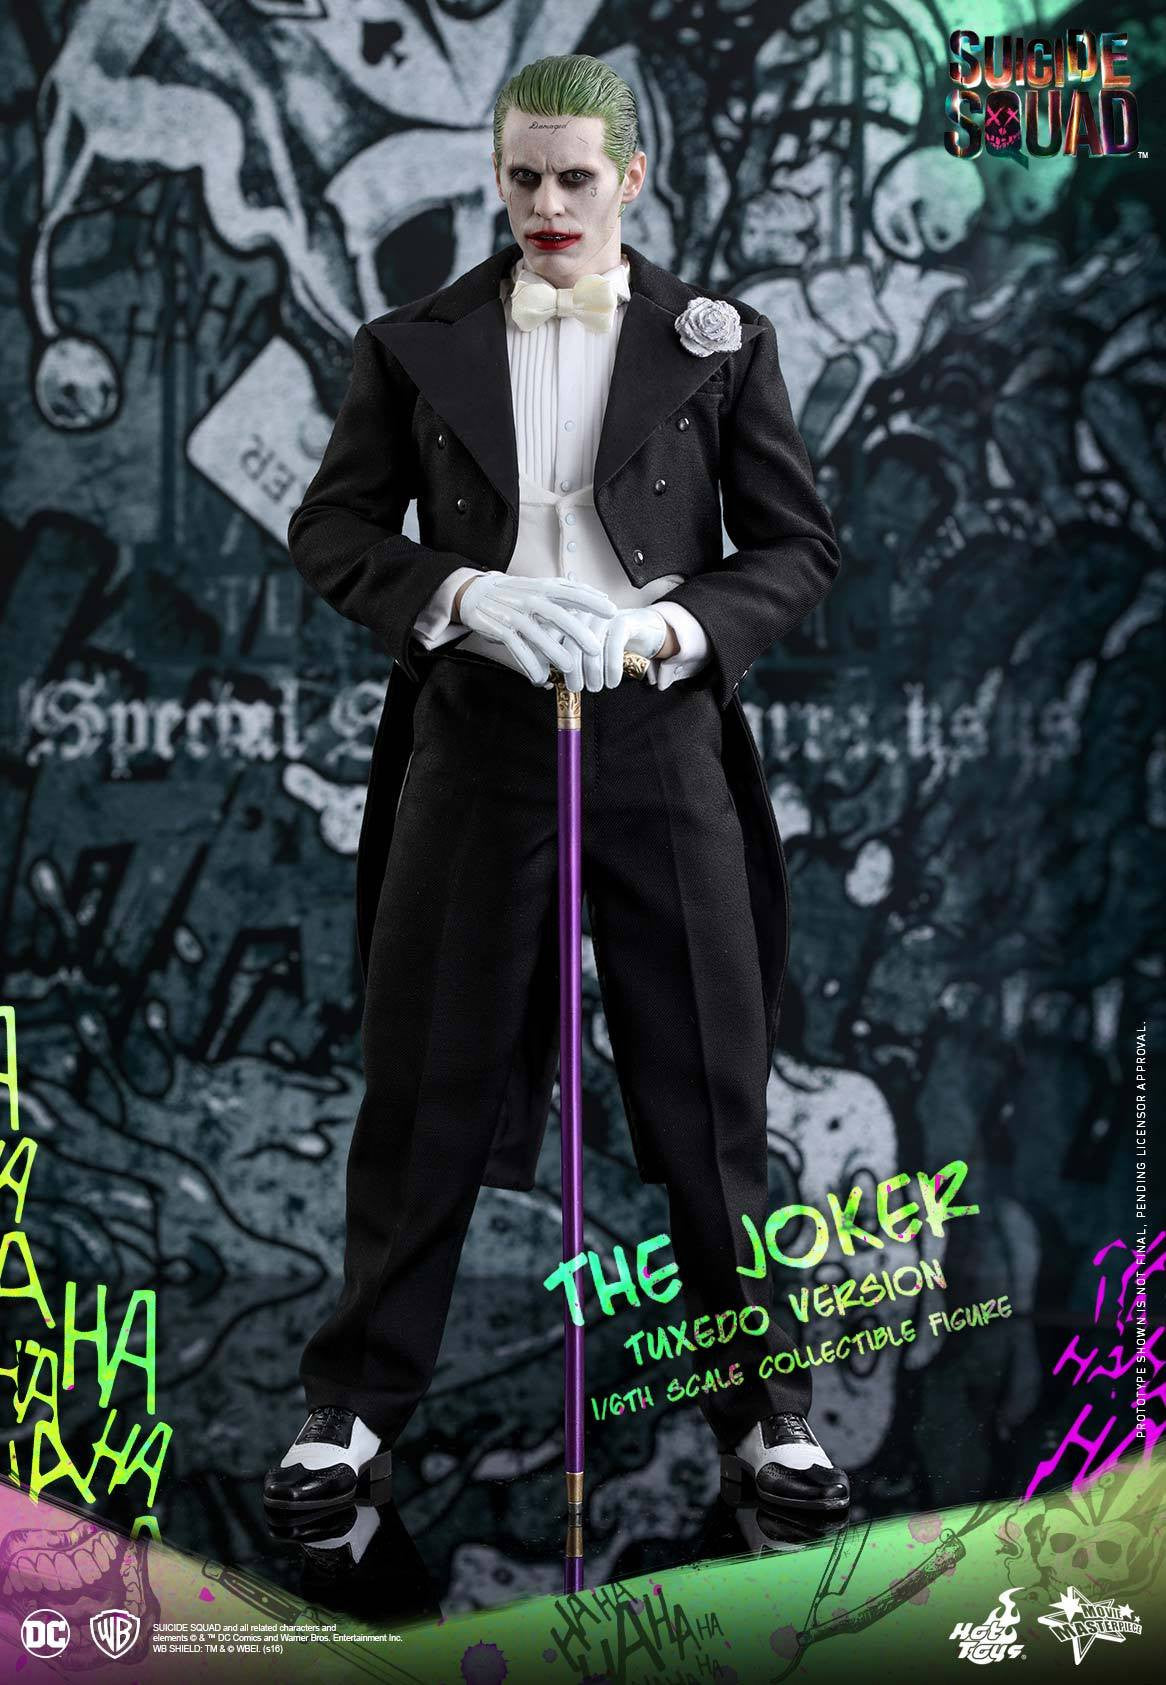 Hot Toys - MMS395 - Suicide Squad - The Joker (Tuxedo Version) - Marvelous Toys - 12